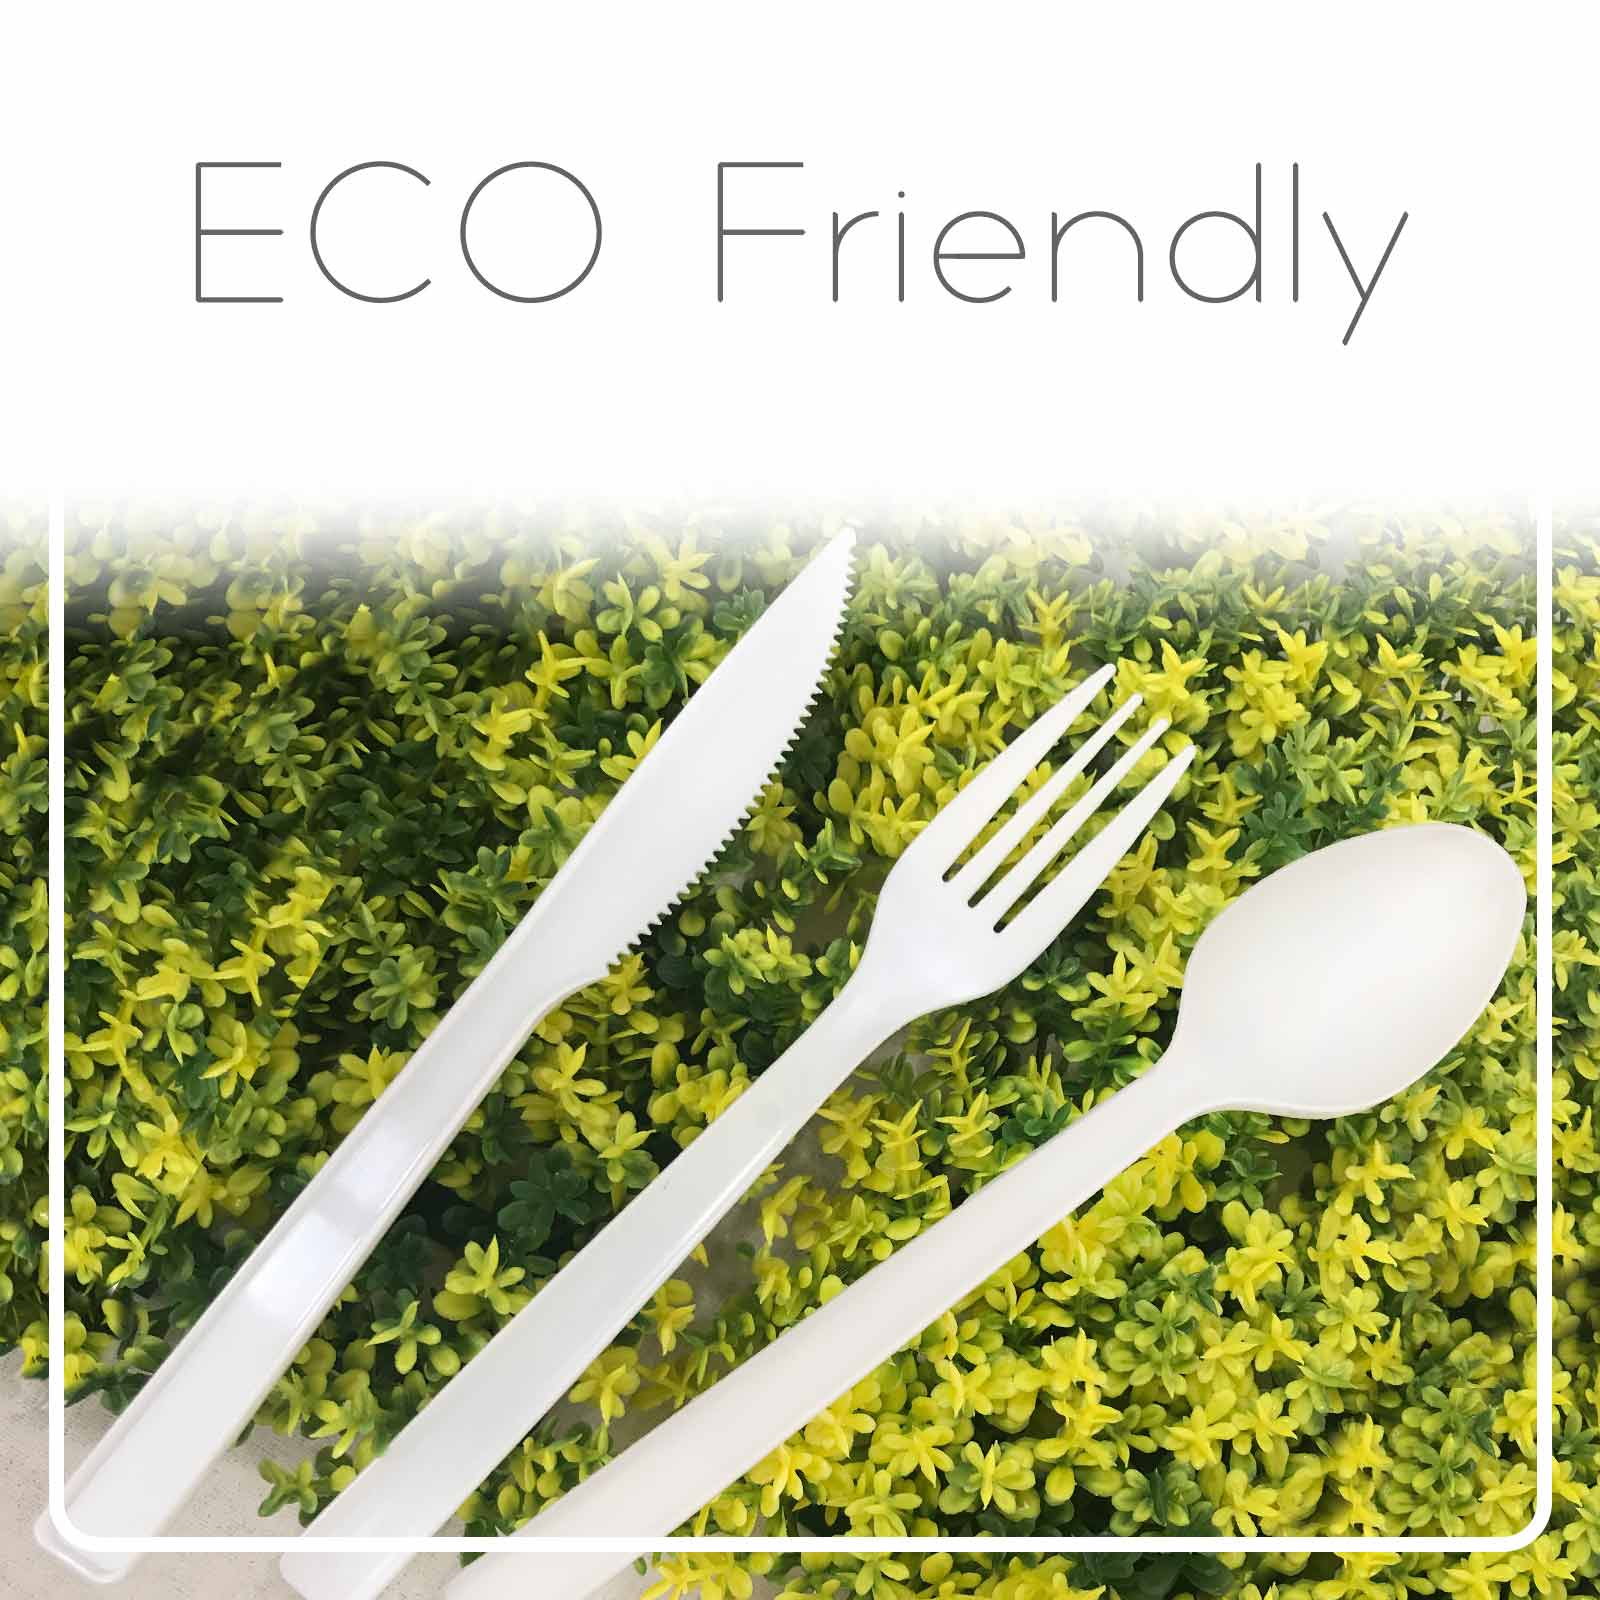 Eco Friendly Tableware - Eco friendly disposable utensil